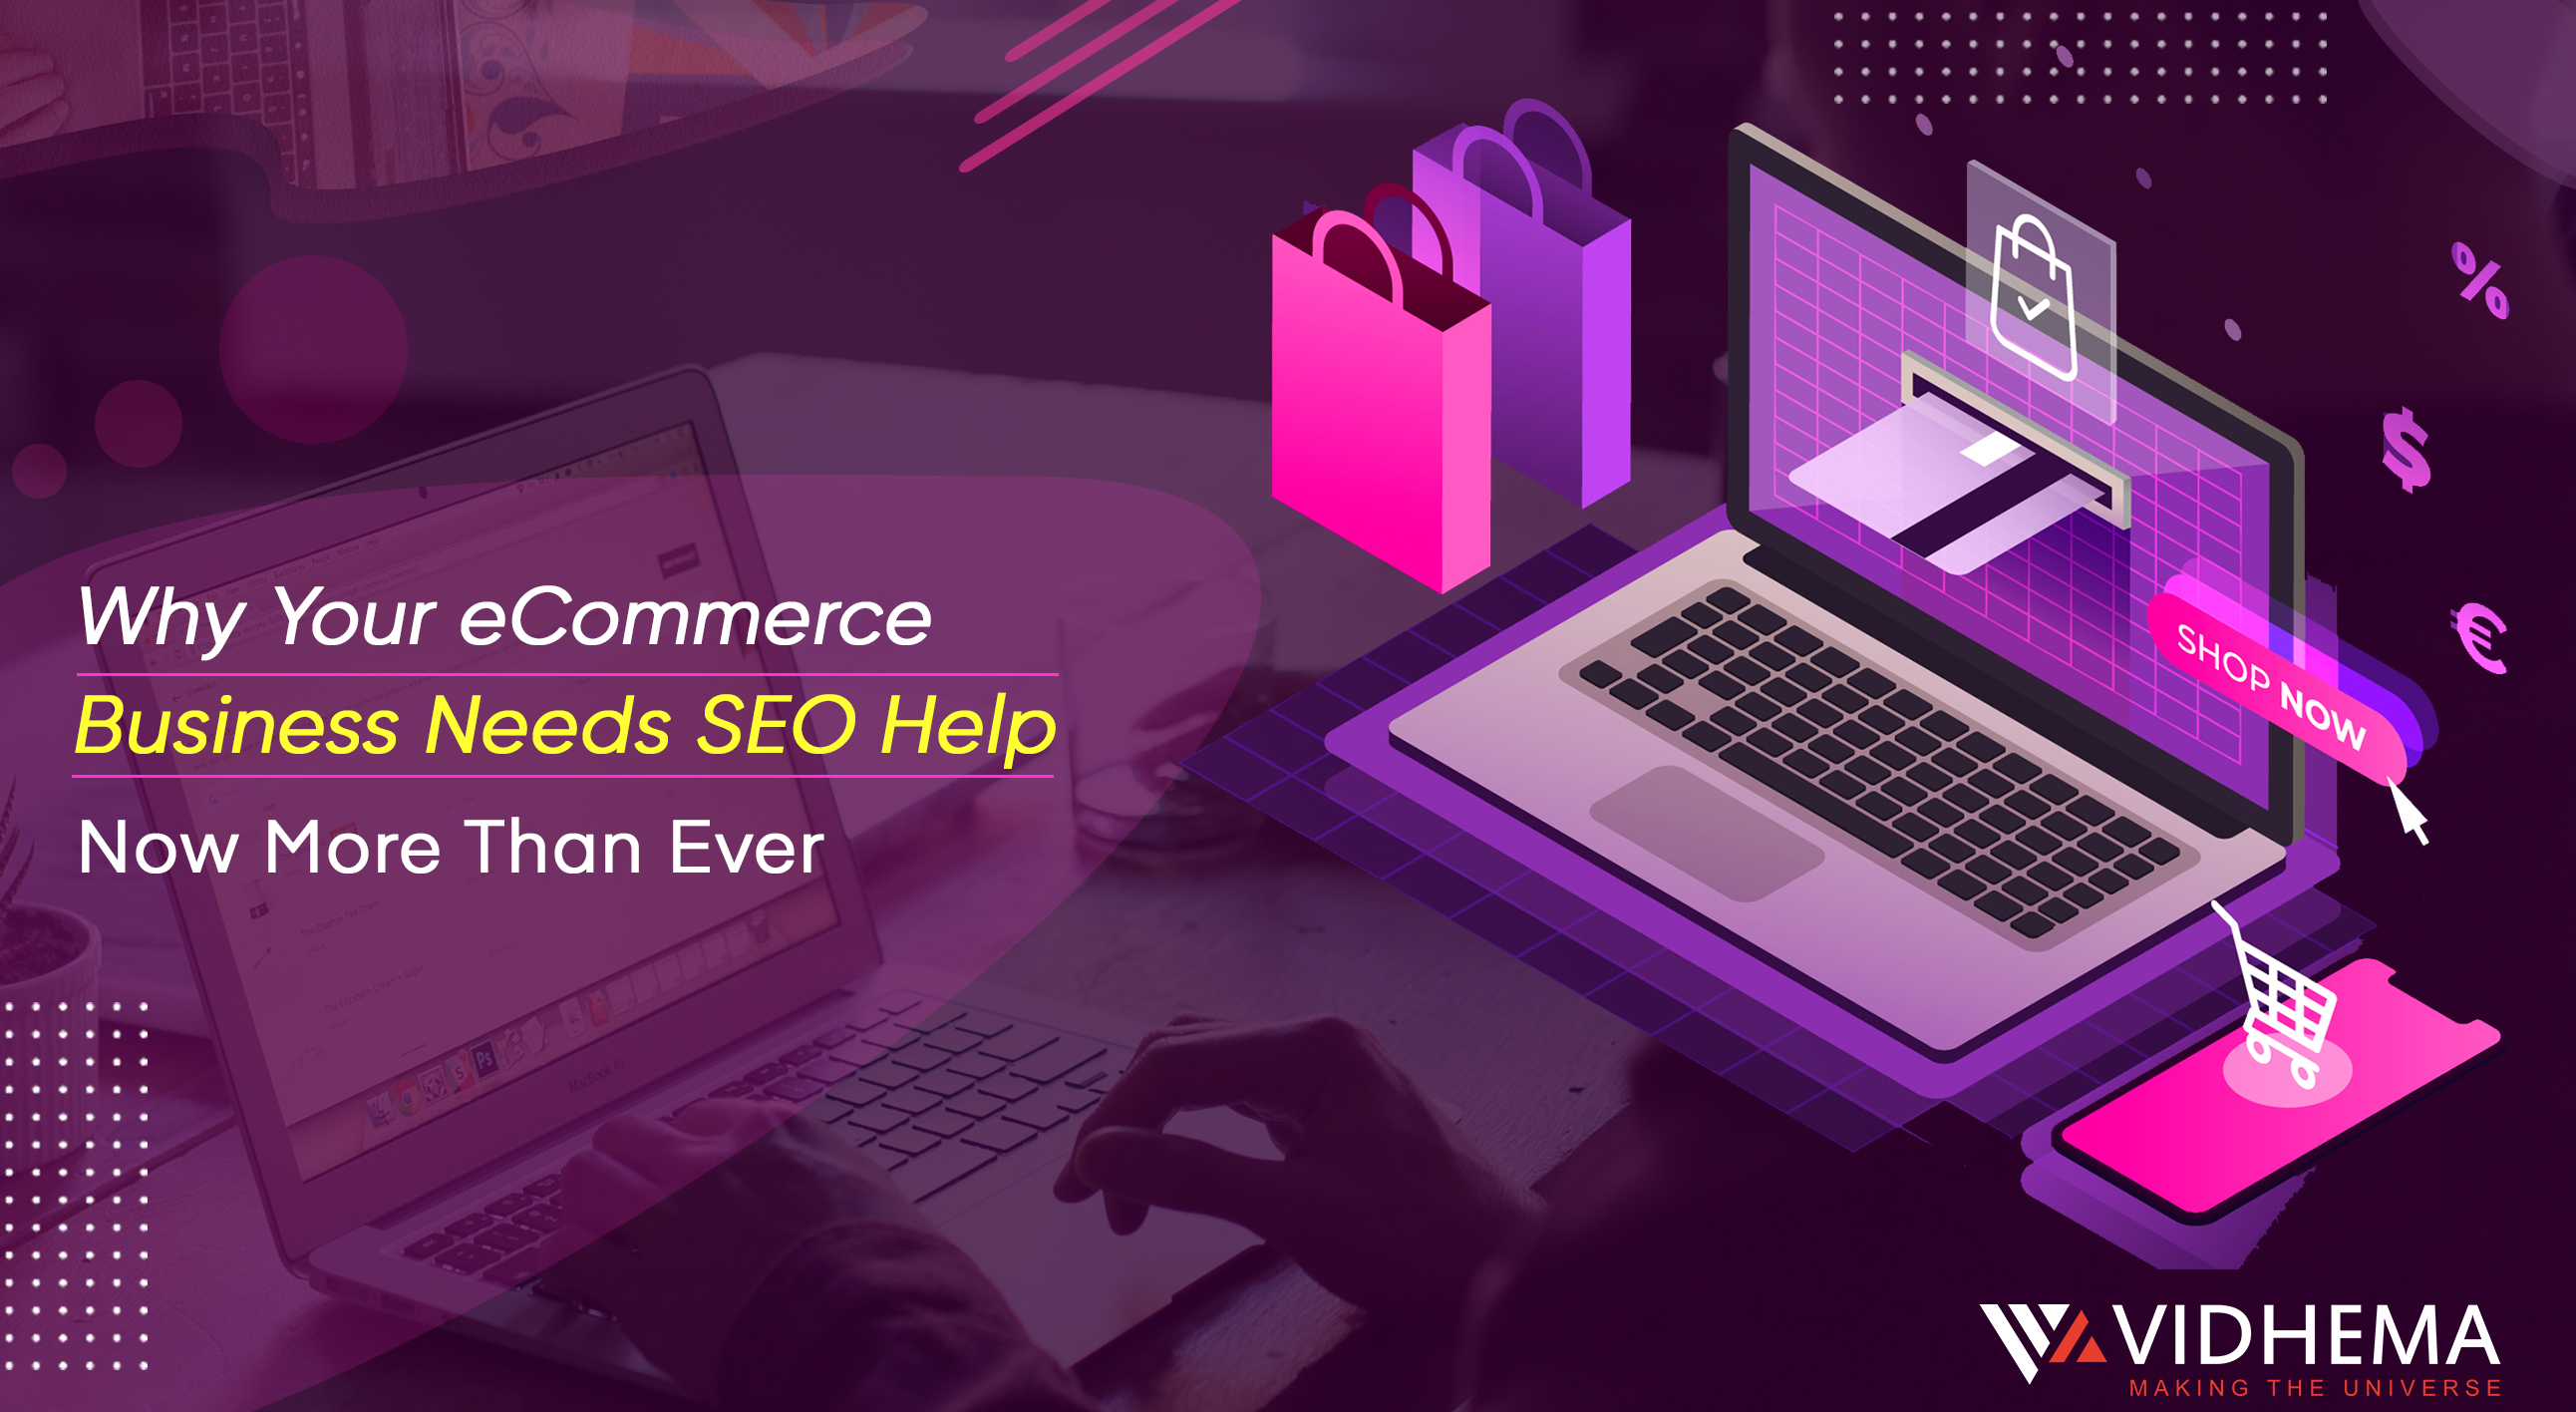 Why Your eCommerce Business Needs SEO Help Now More Than Ever